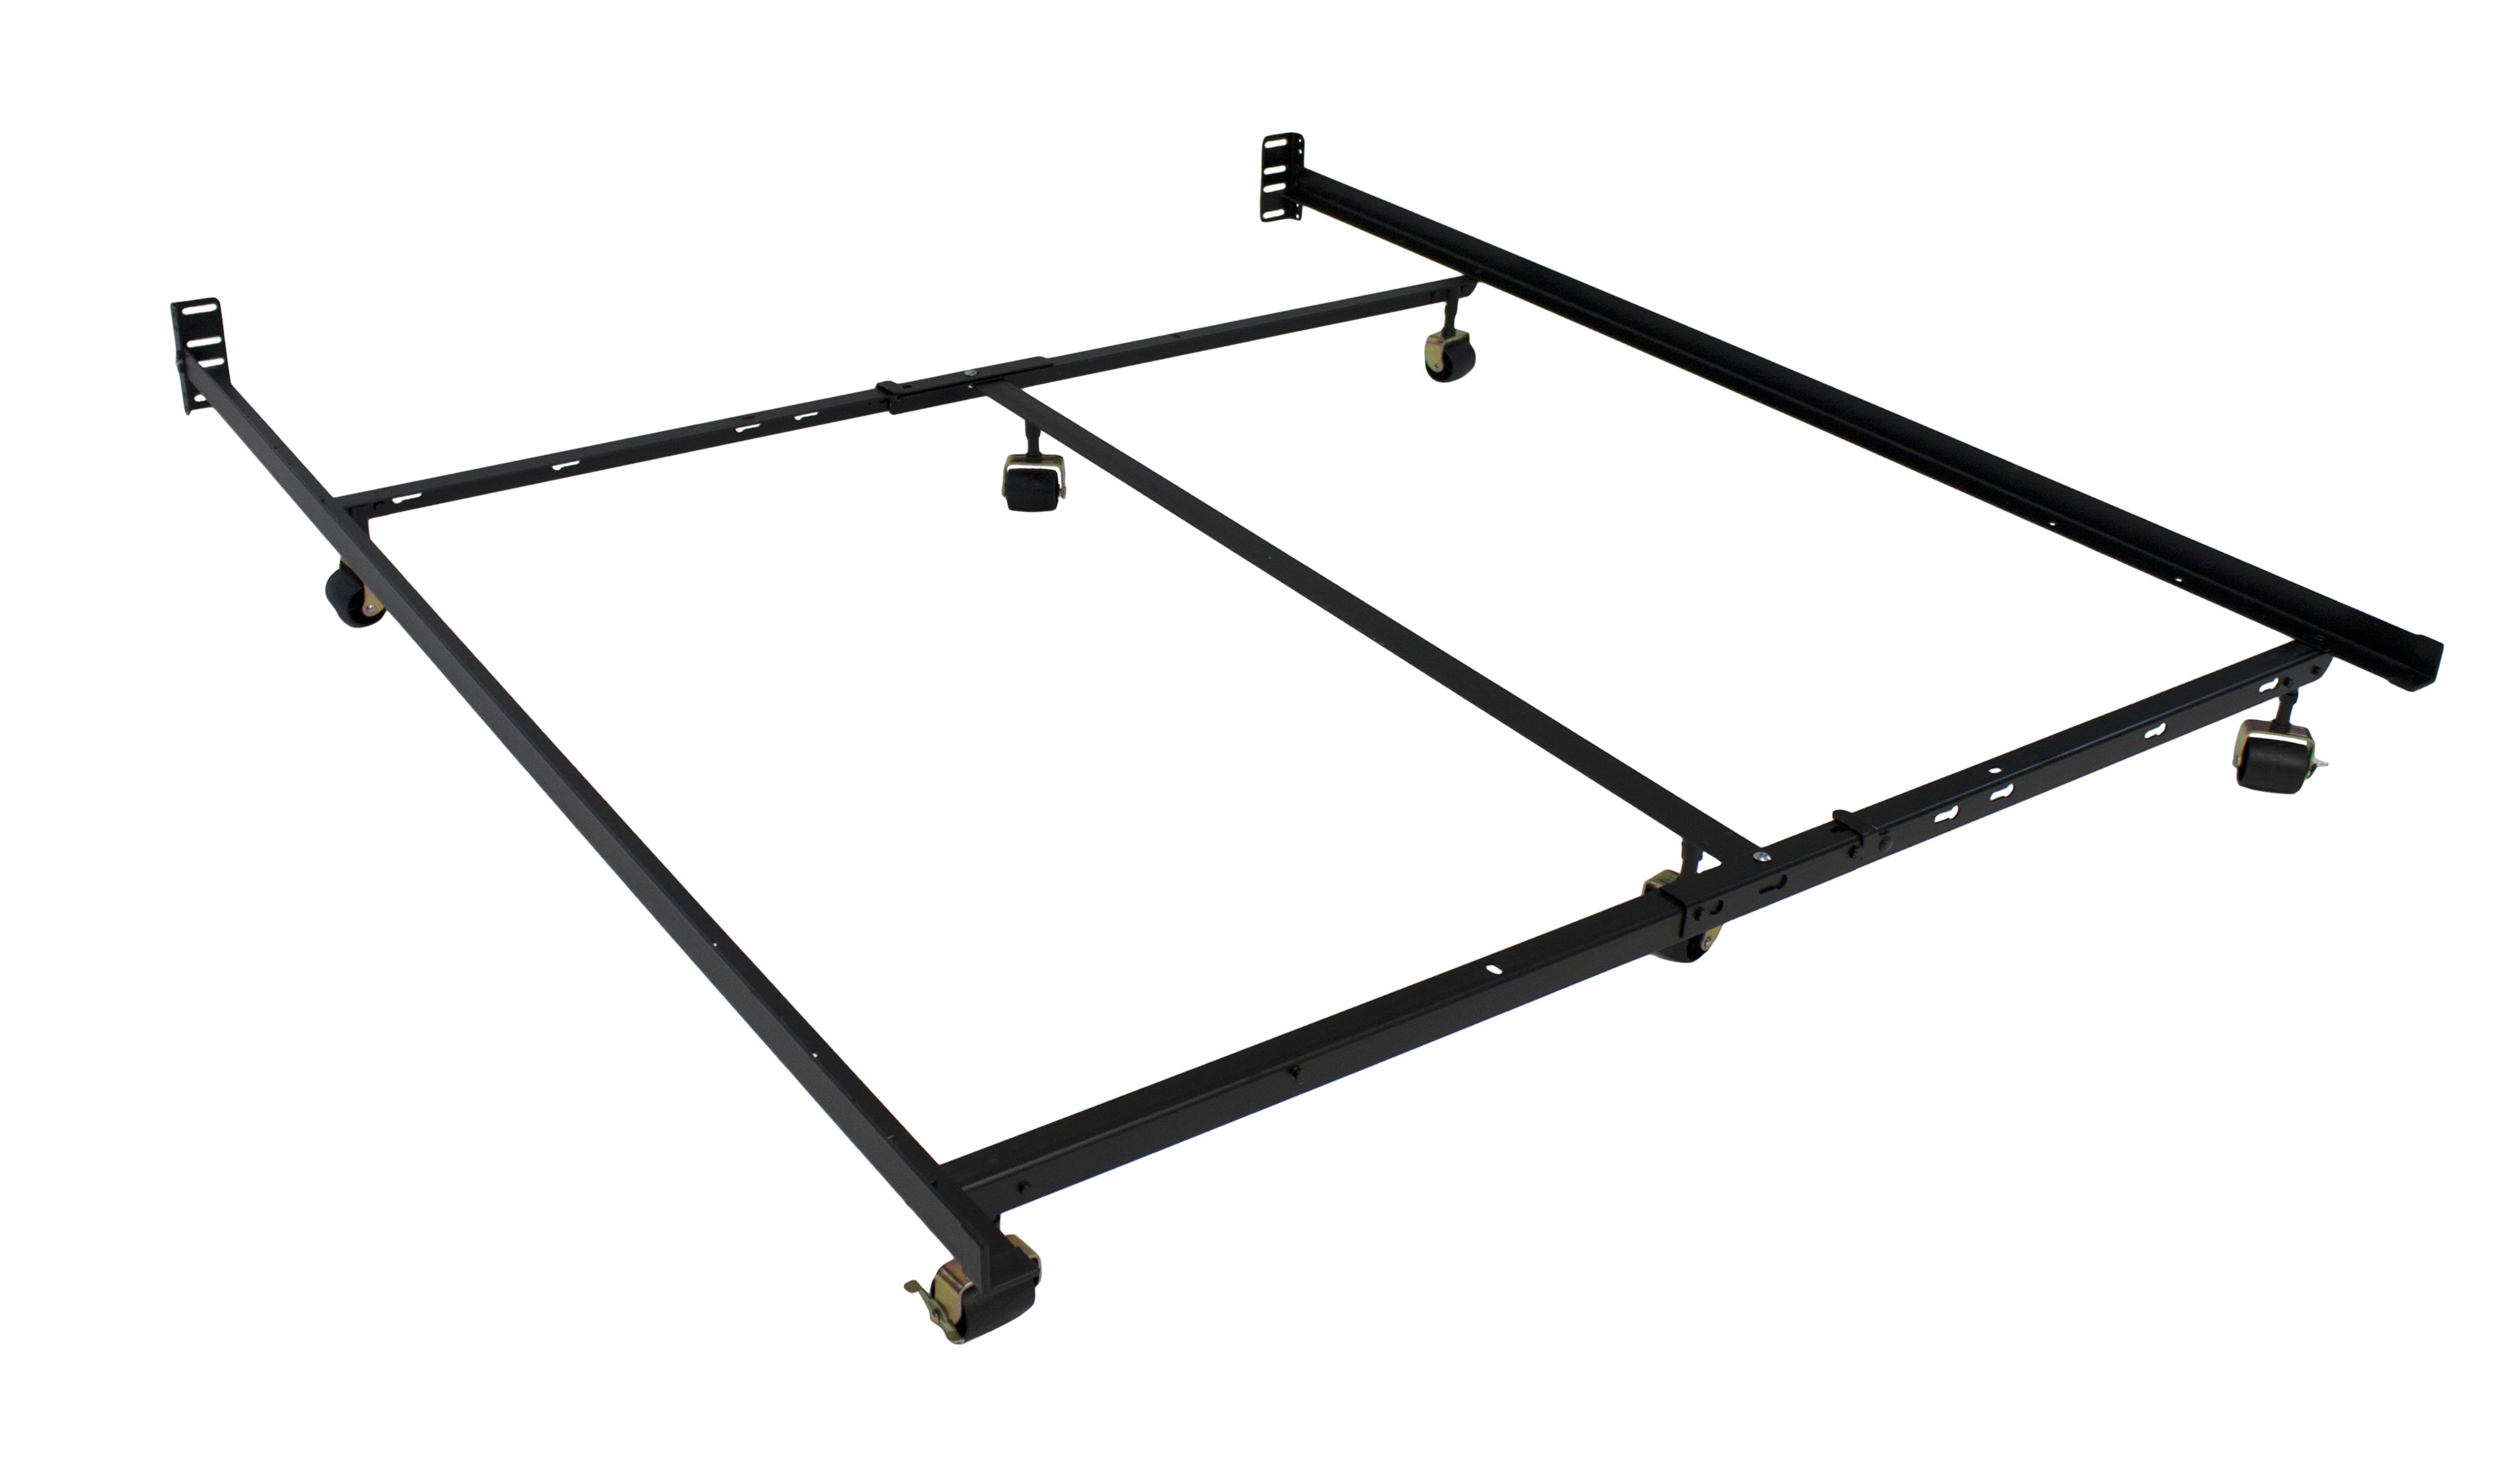 Multi-Fit Low Profile Bed Frame by Hollywood Bed Frame Company at SlumberWorld